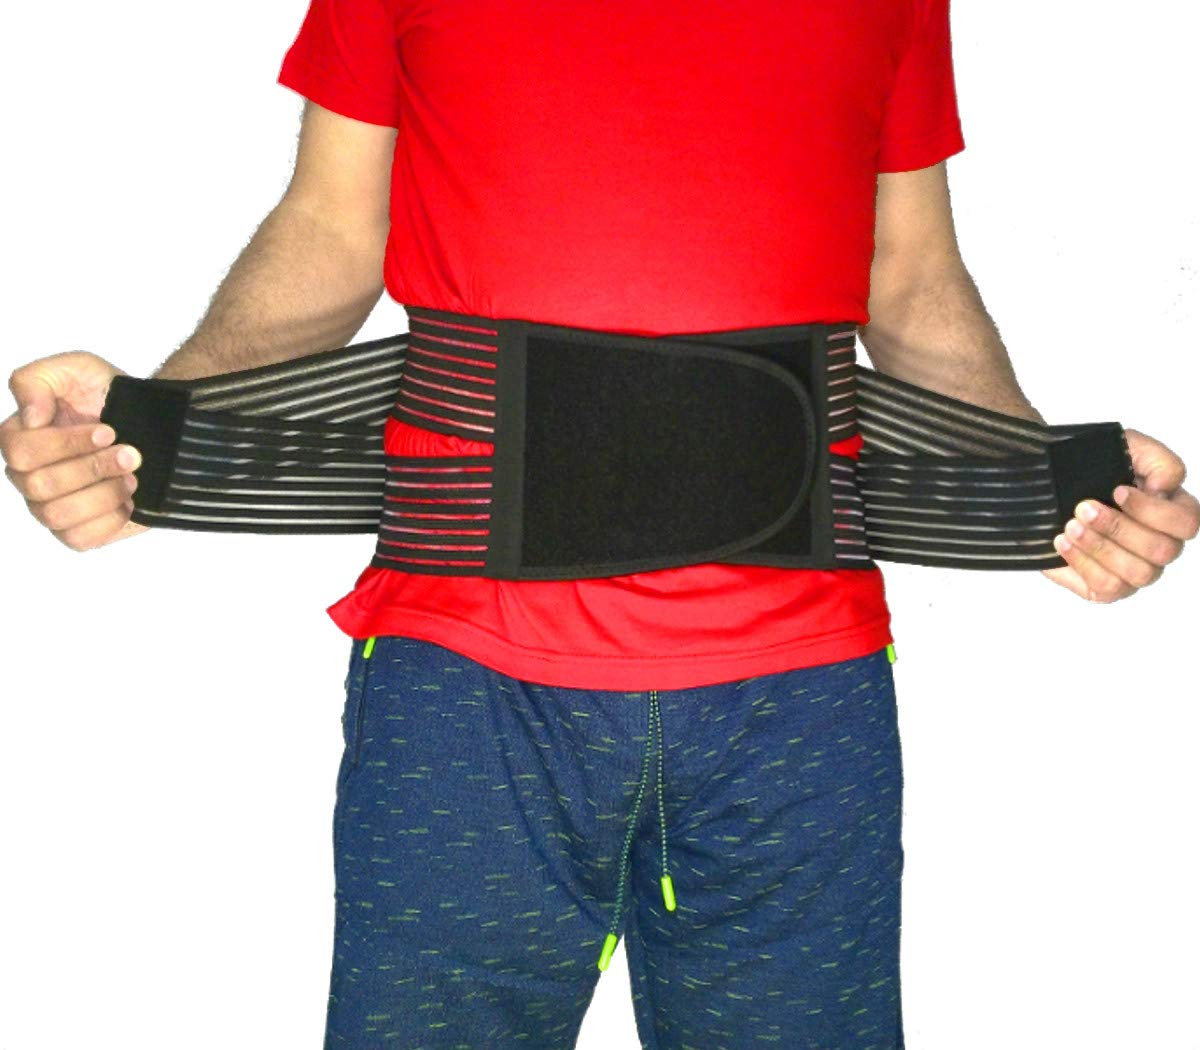 Best Back Brace Lumbar Support Belt for Lower Back Pain | Men & Women Under Clothes Breathable Fabric Big Size | Relief disc Sciatica Scoliosis Surgery Pain | Dual Stretch Heavy Lift (L/XL=35-45